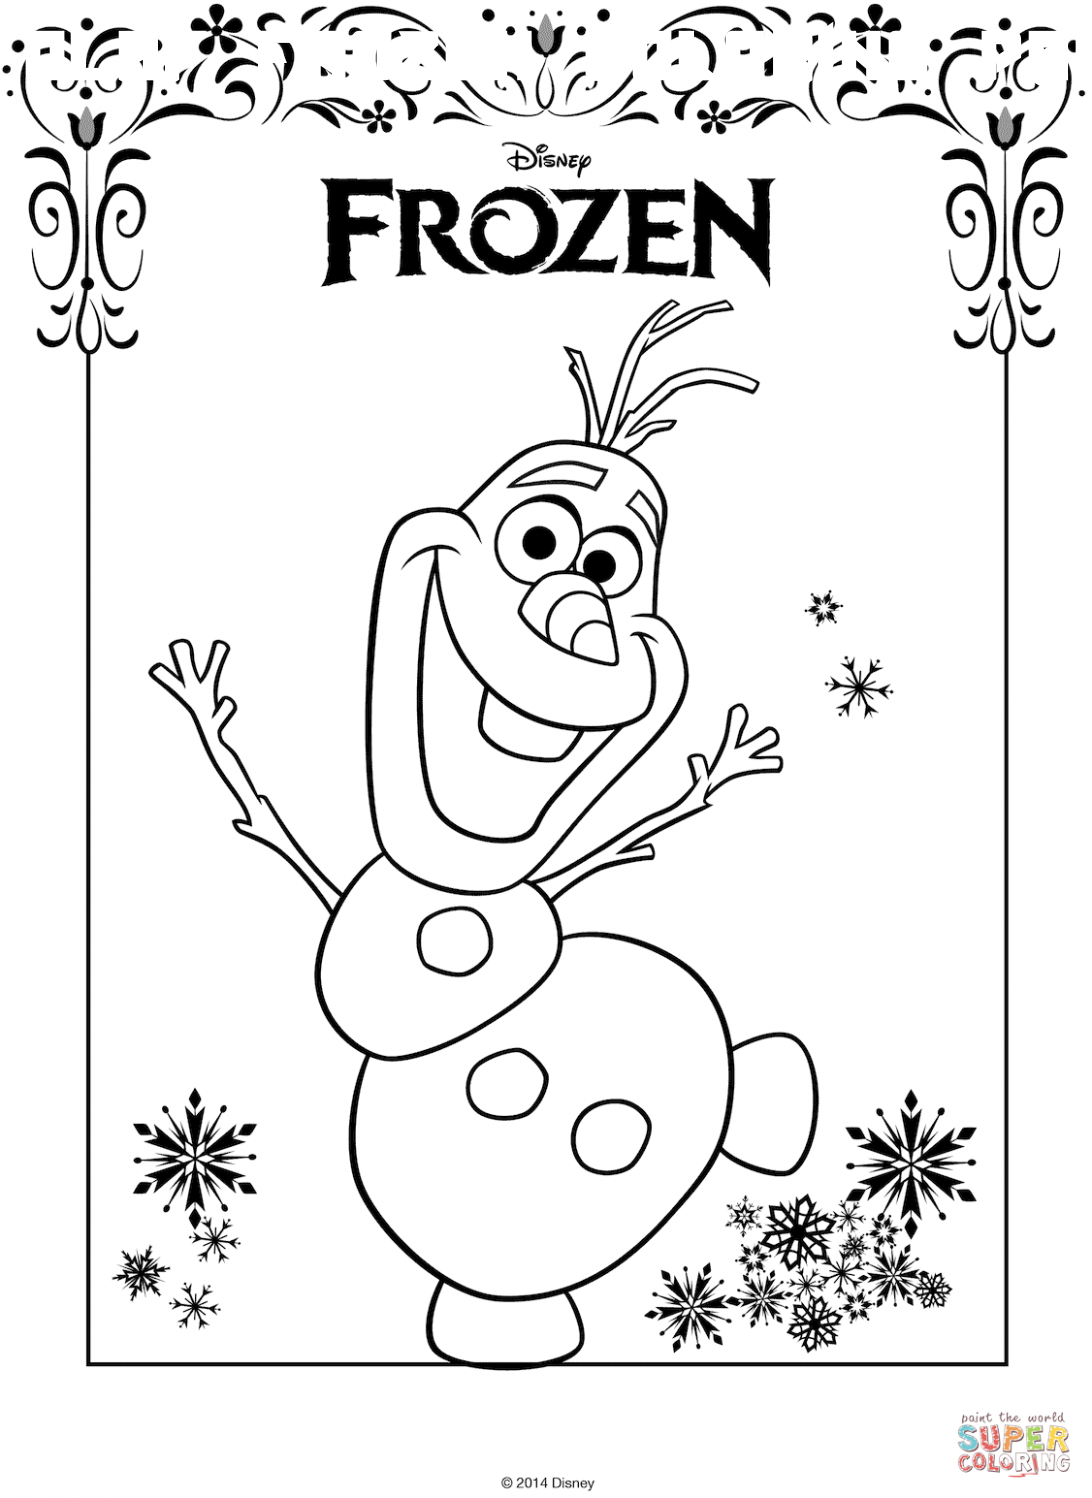 7 Olaf Frozen Coloring Pages In